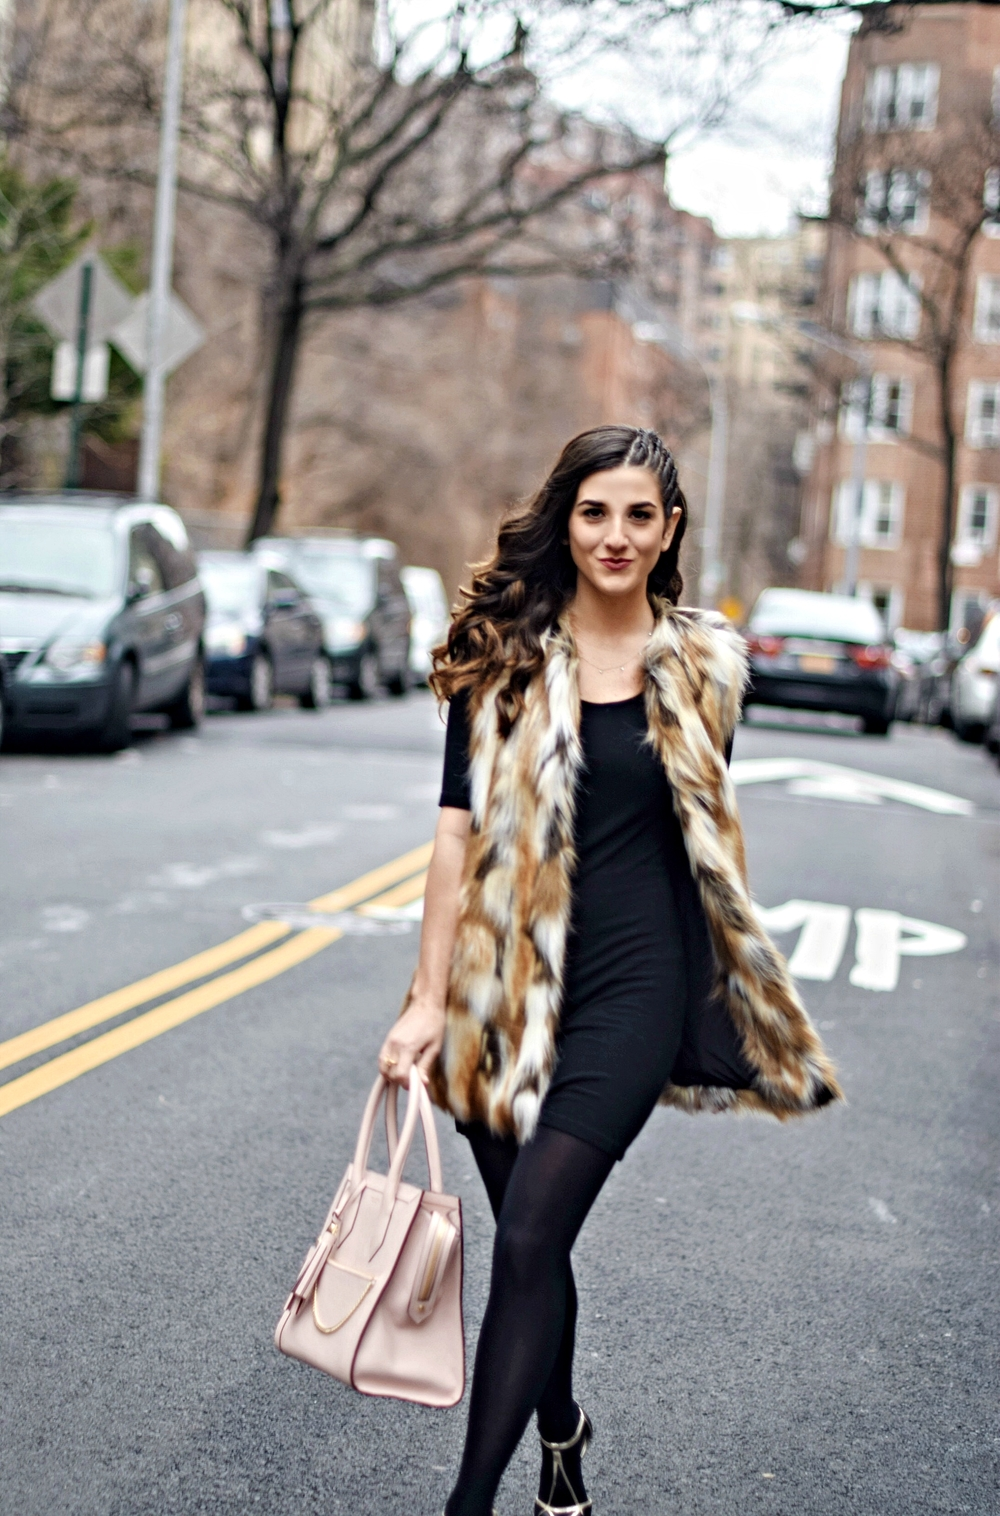 Calico Fur Henri Bendel Structured Leather Bag Louboutins & Love Fashion Blog Esther Santer NYC Street Style Blogger Zara Gold Jewelry Bracelet Pink Purse Vest Hair Inspo Outfit OOTD Cornrows Black Dress LBD Shoes Heels Girl Women Winter Fall Shopping.jpg